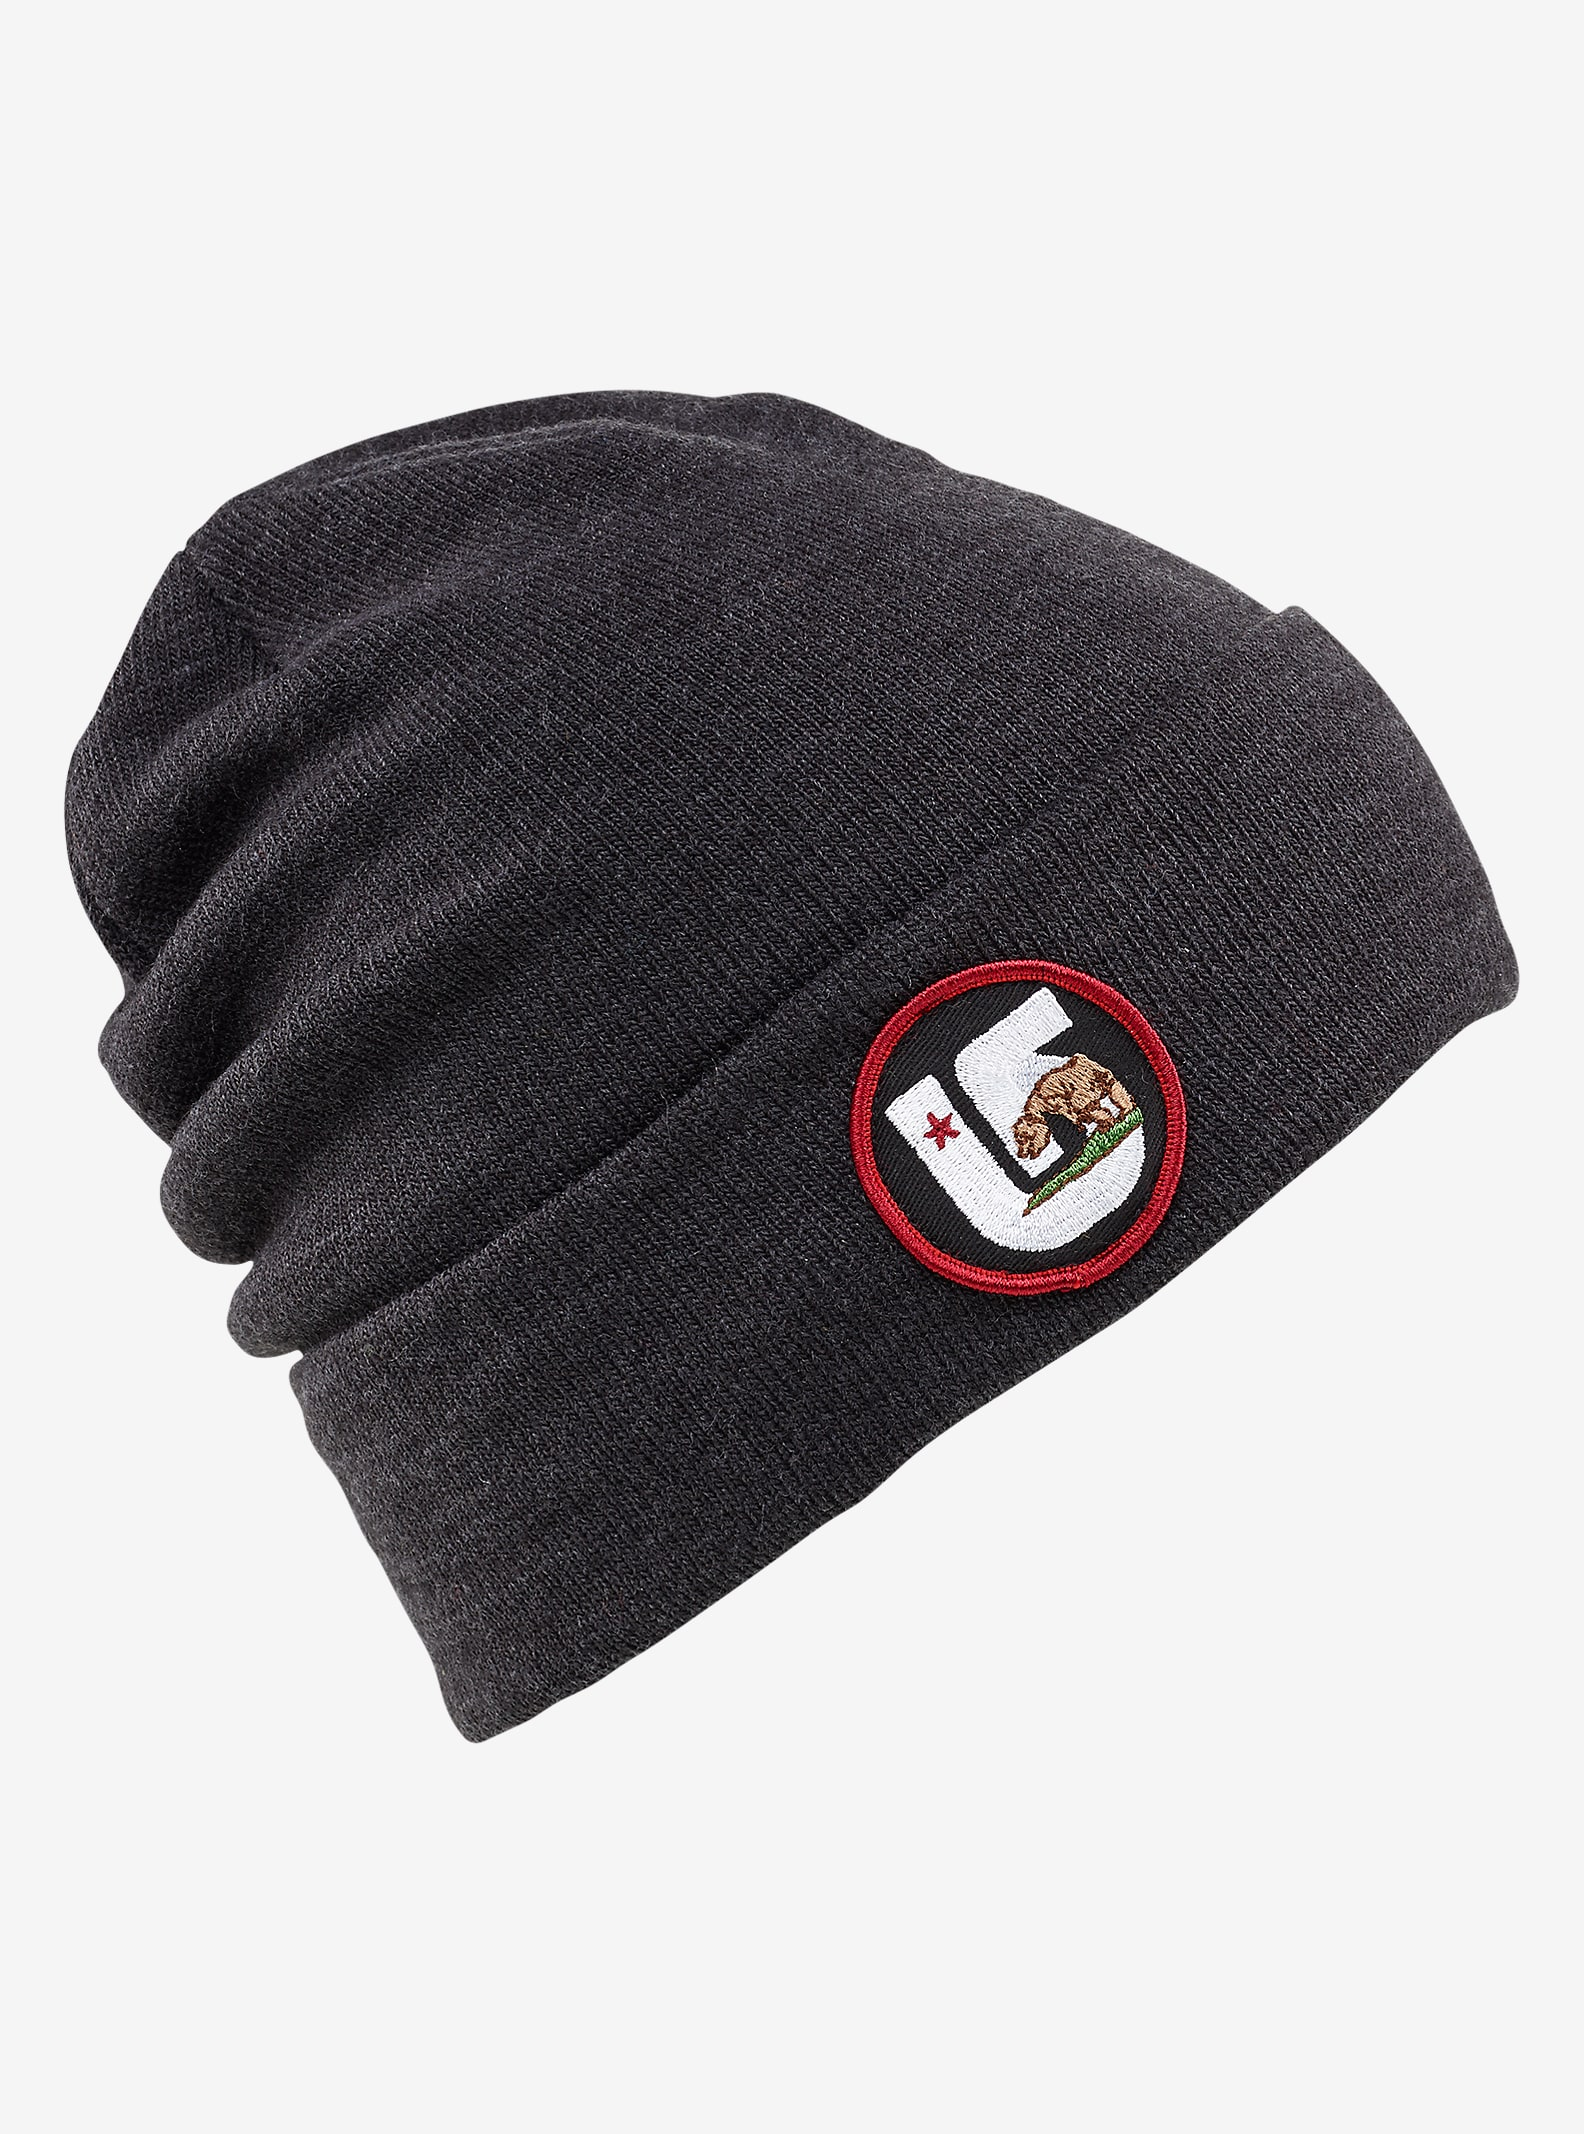 Burton Regional Beanie shown in California